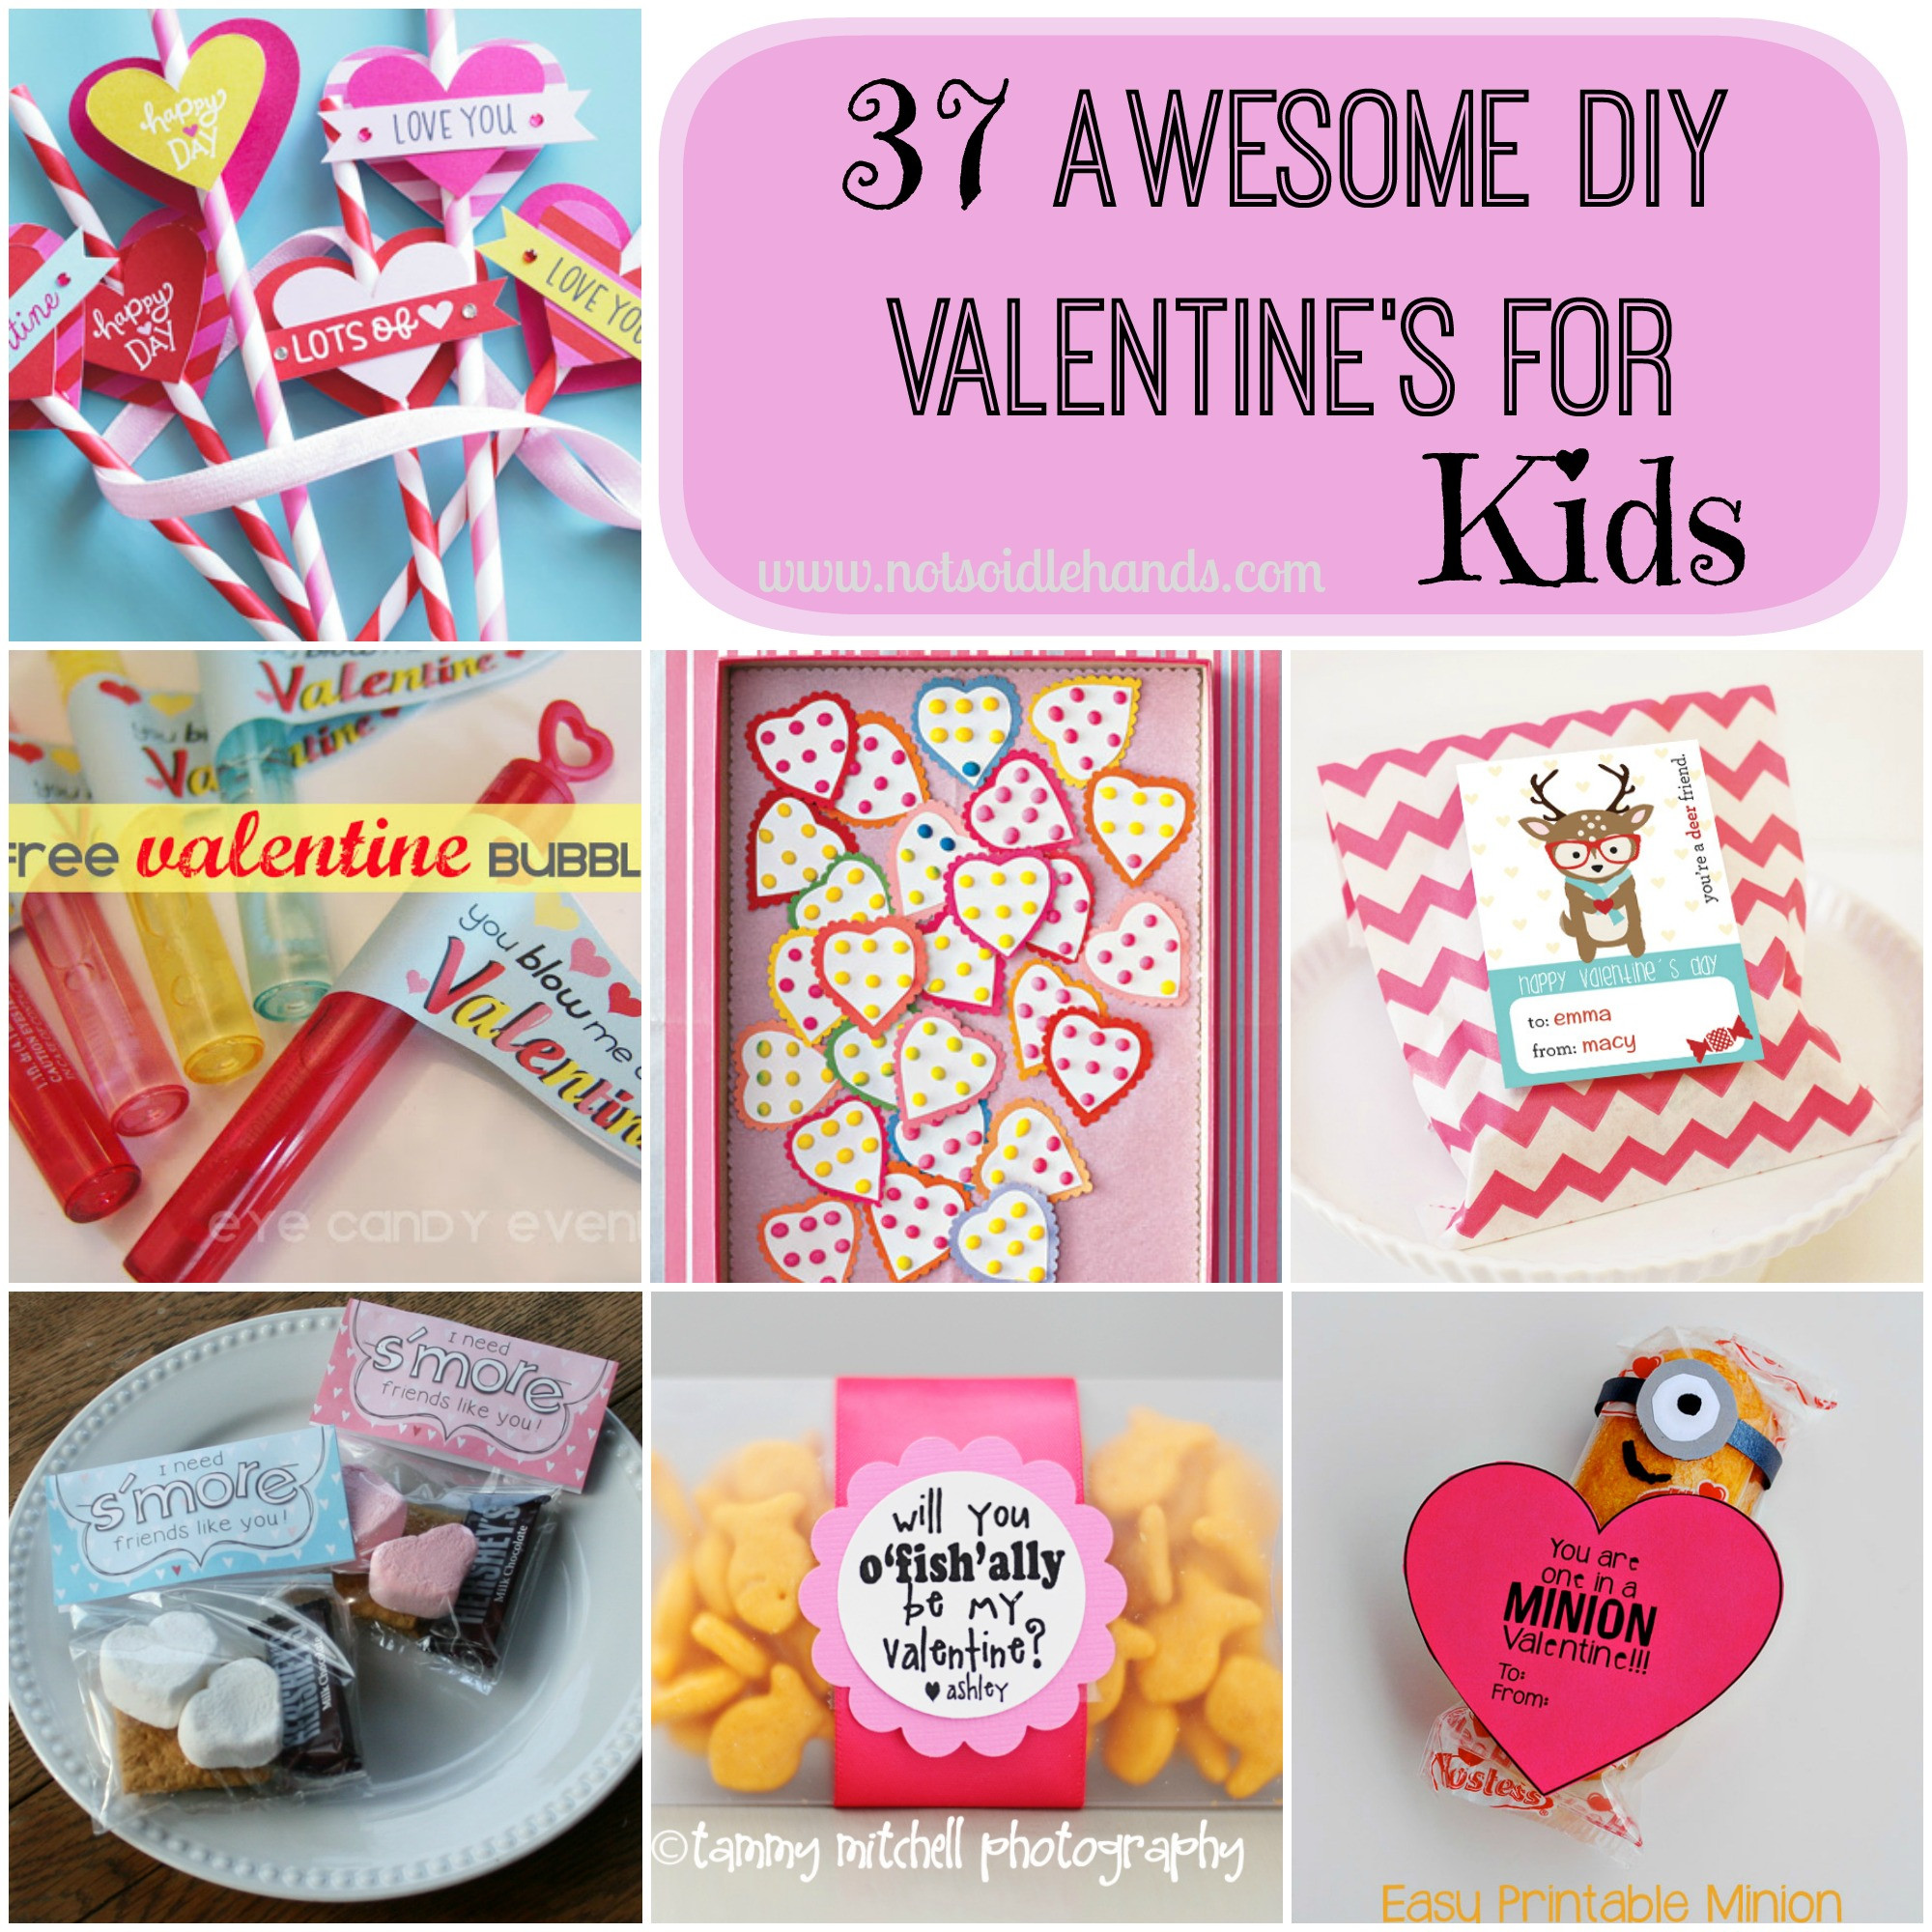 Best ideas about DIY Valentines For Kids . Save or Pin 37 Awesome DIY School Valentine's for Kids Now.